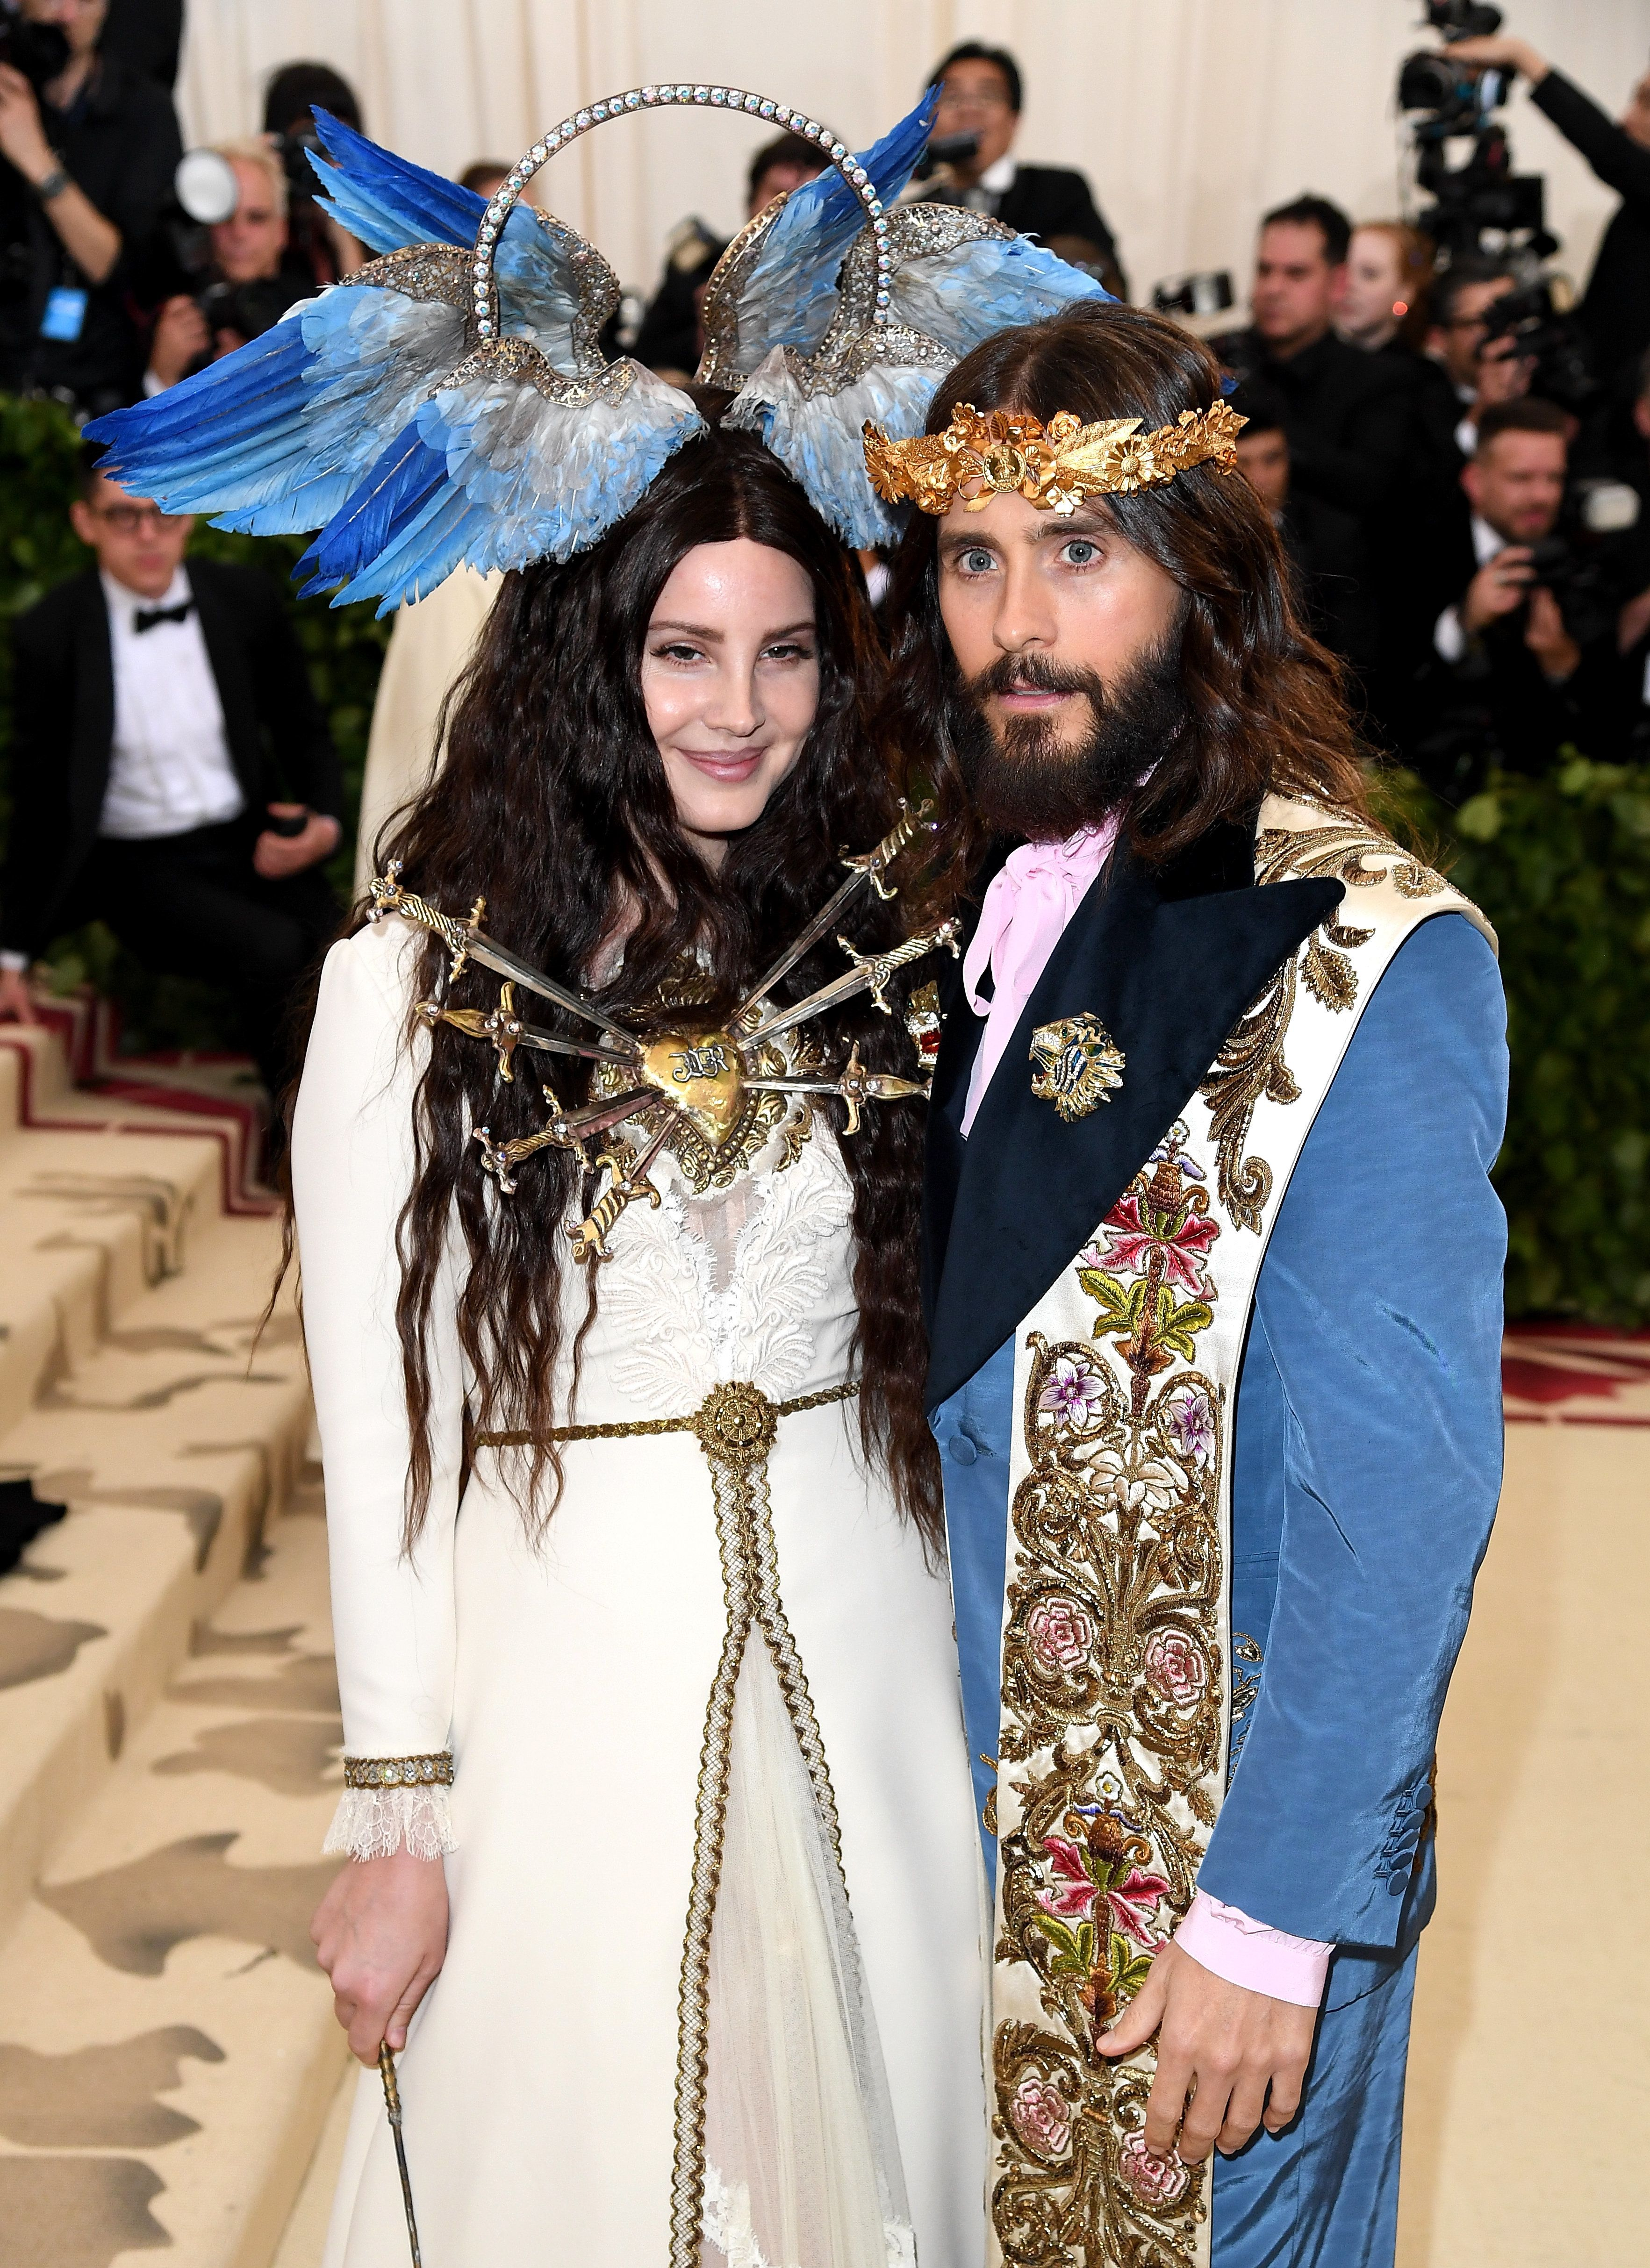 NEW YORK, NY - MAY 07:  Lana del Ray and Jared Leto attend Heavenly Bodies: Fashion & The Catholic Imagination Costume Institute Gala at the Metropolitan Museum of Art on May 7, 2018 in New York City.  (Photo by Karwai Tang/Karwai Tang/Getty Images)